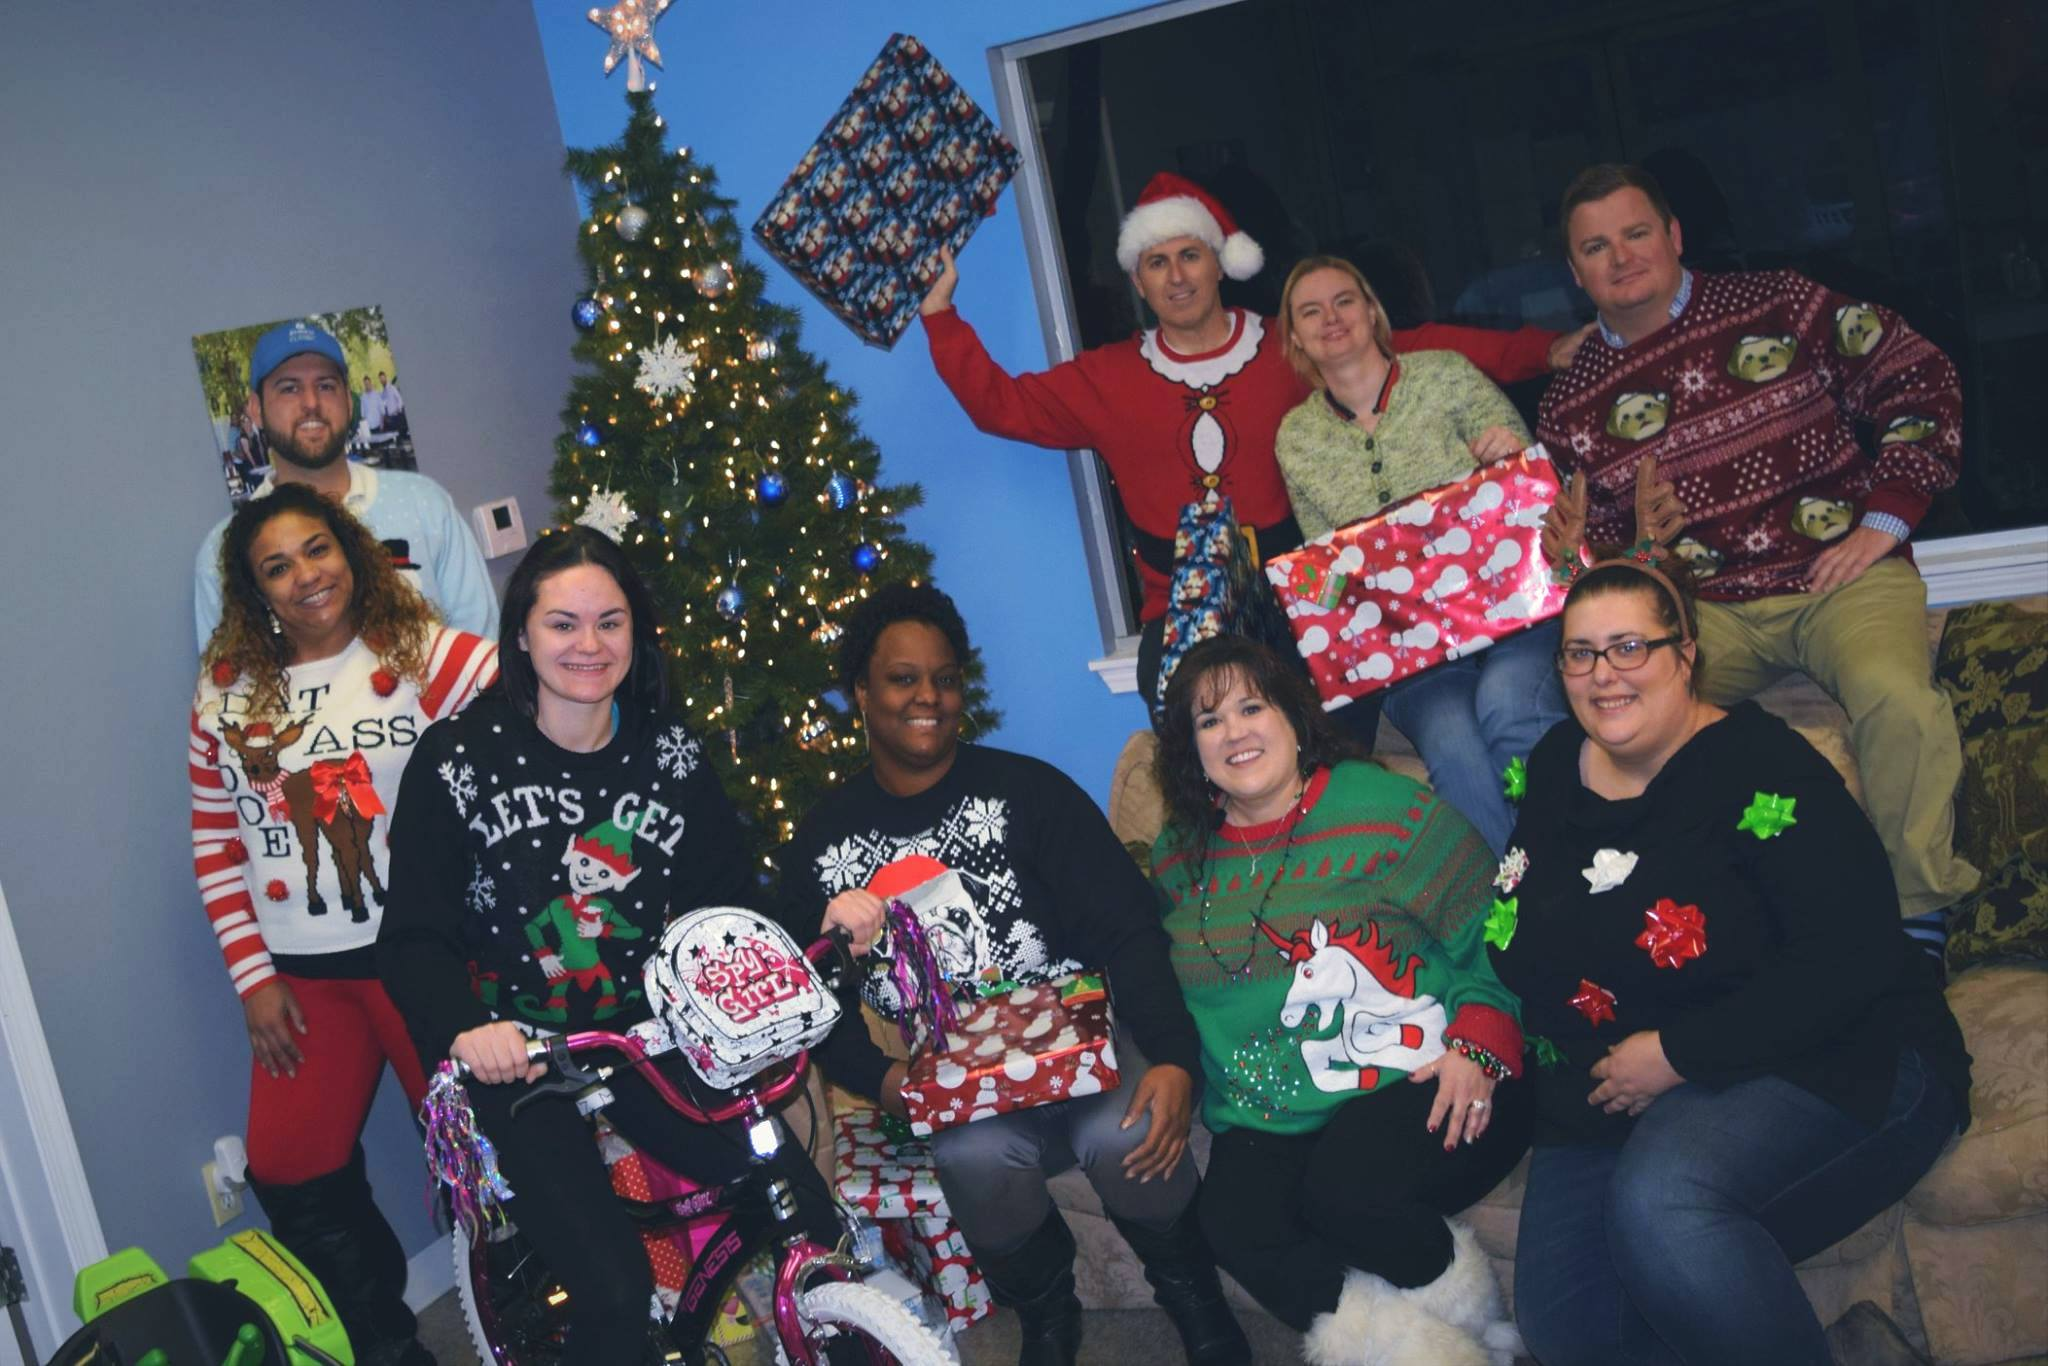 December 15 - Our Adopt-a-family tradition was once again a huge success.